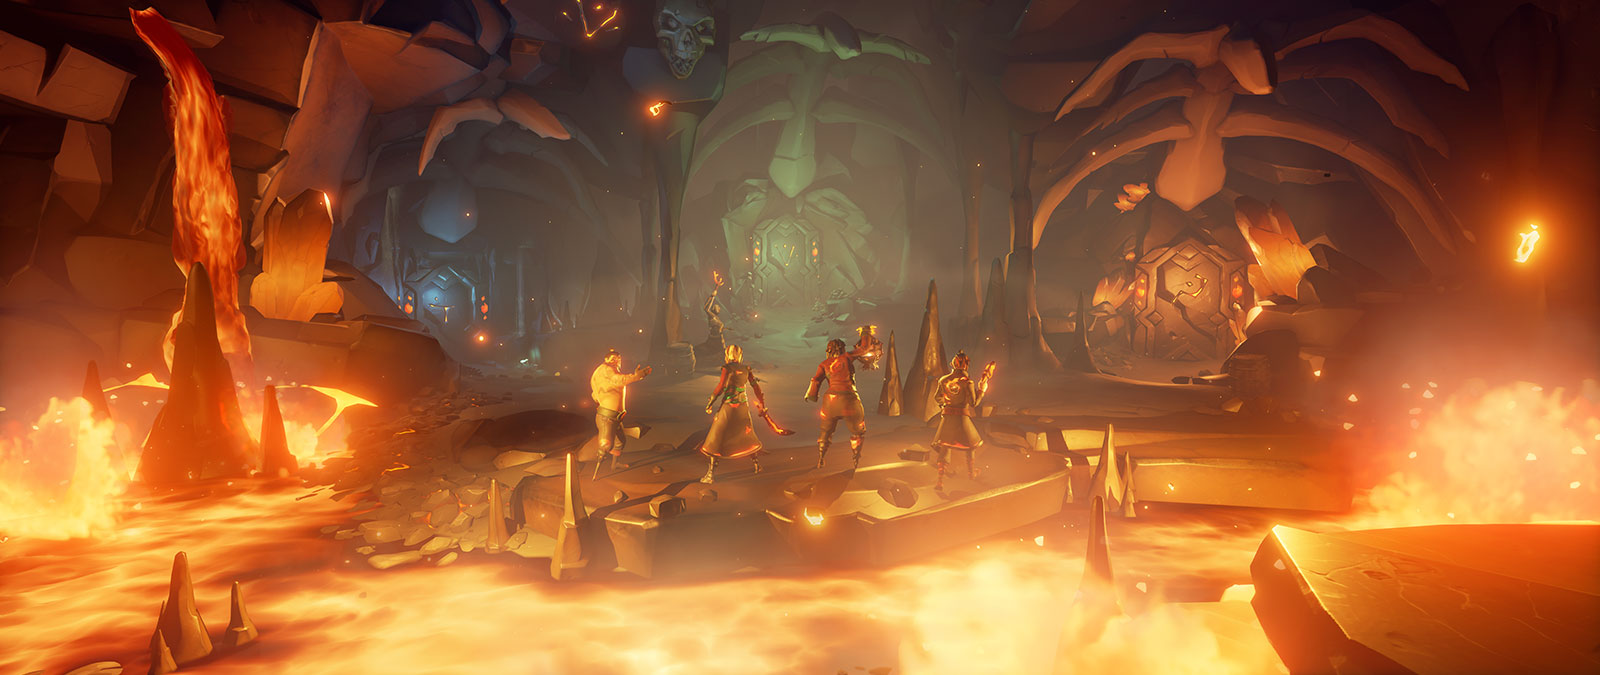 Vier personages uit Sea of Thieves in een grot met lava